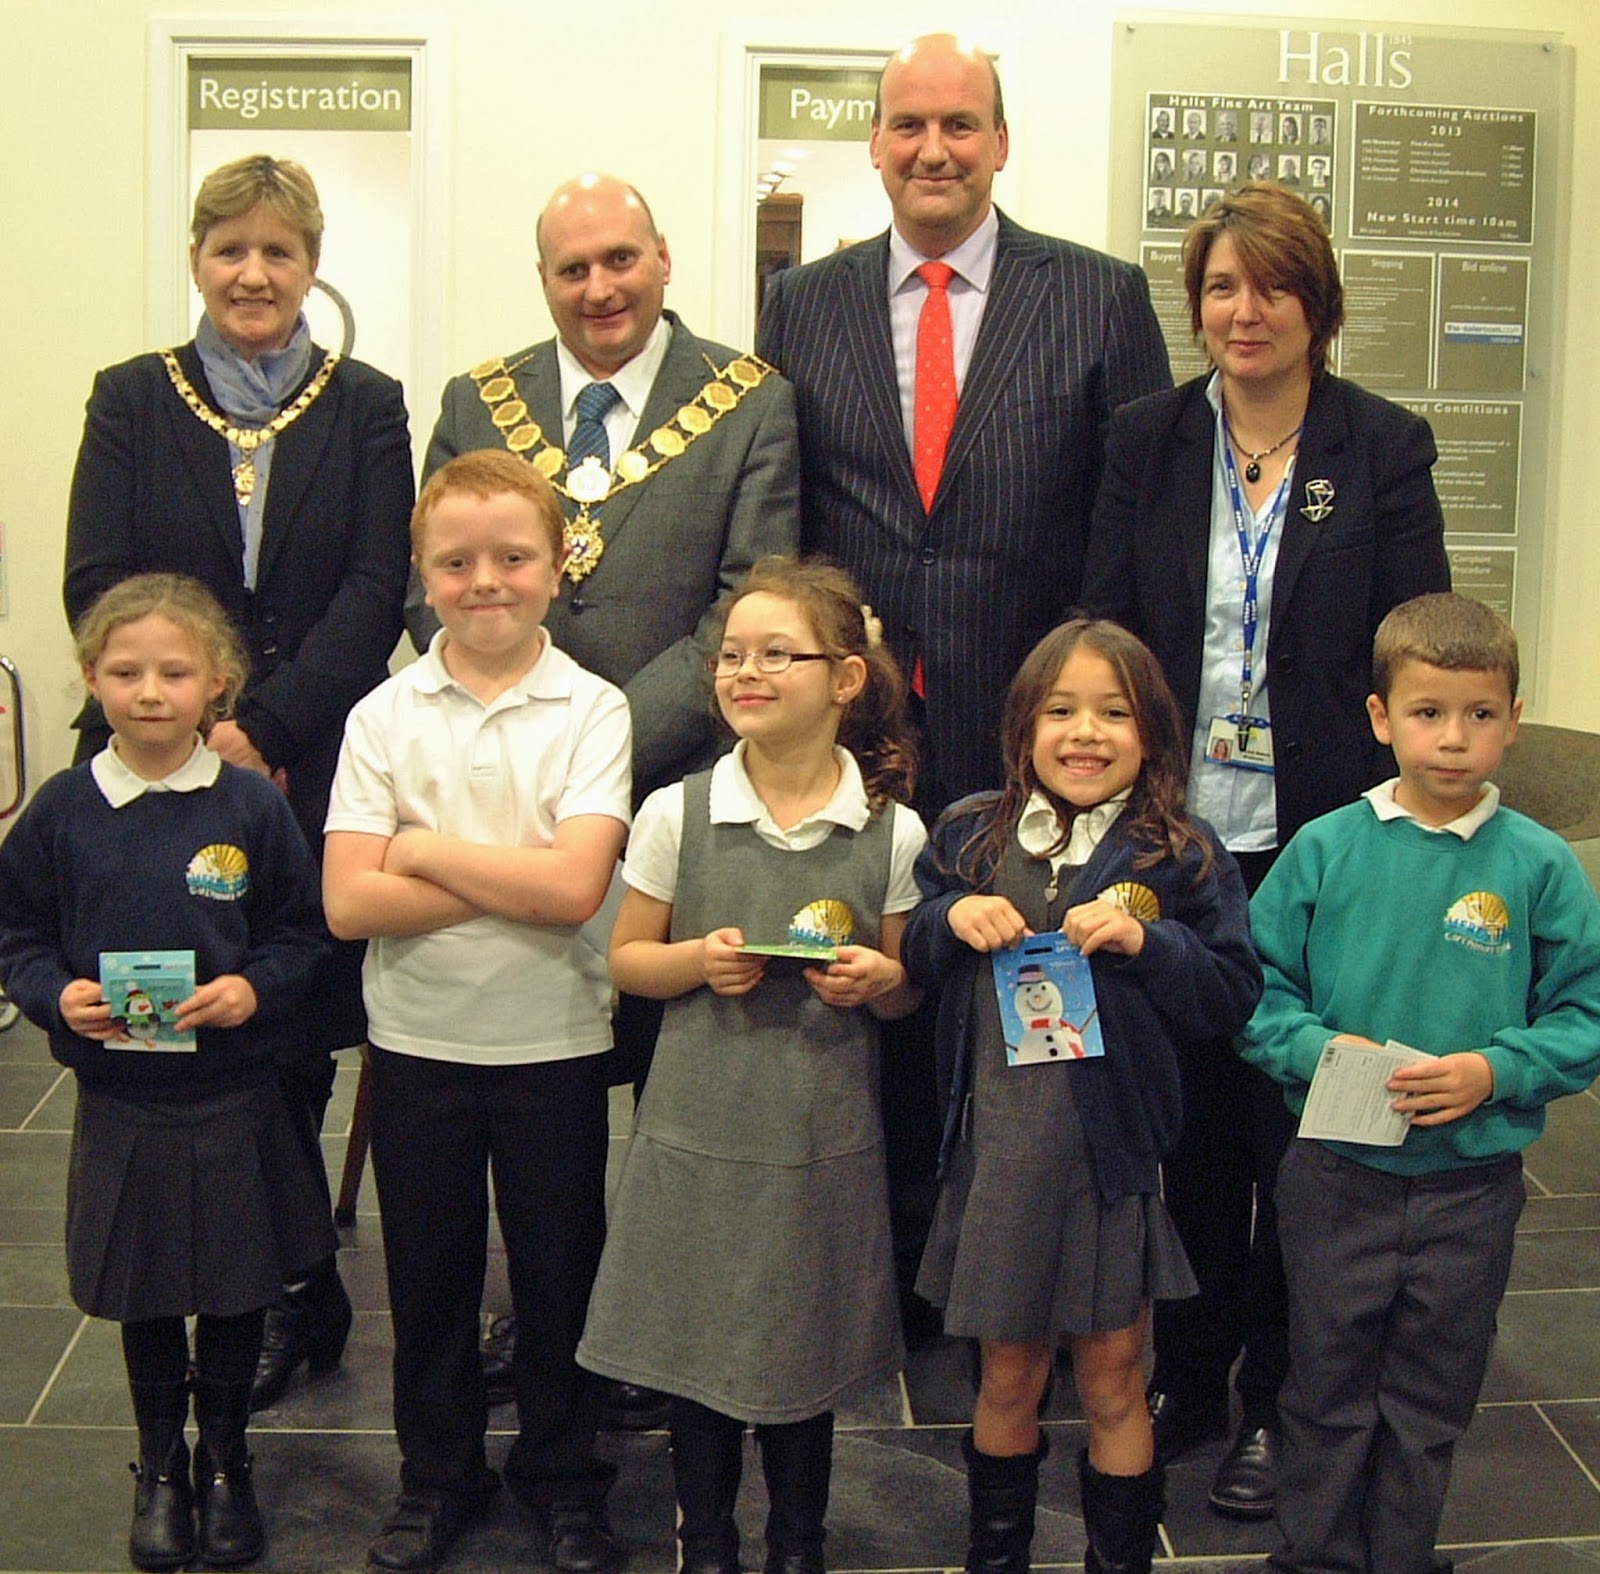 Winners announced for Halls' art competition for primary schools